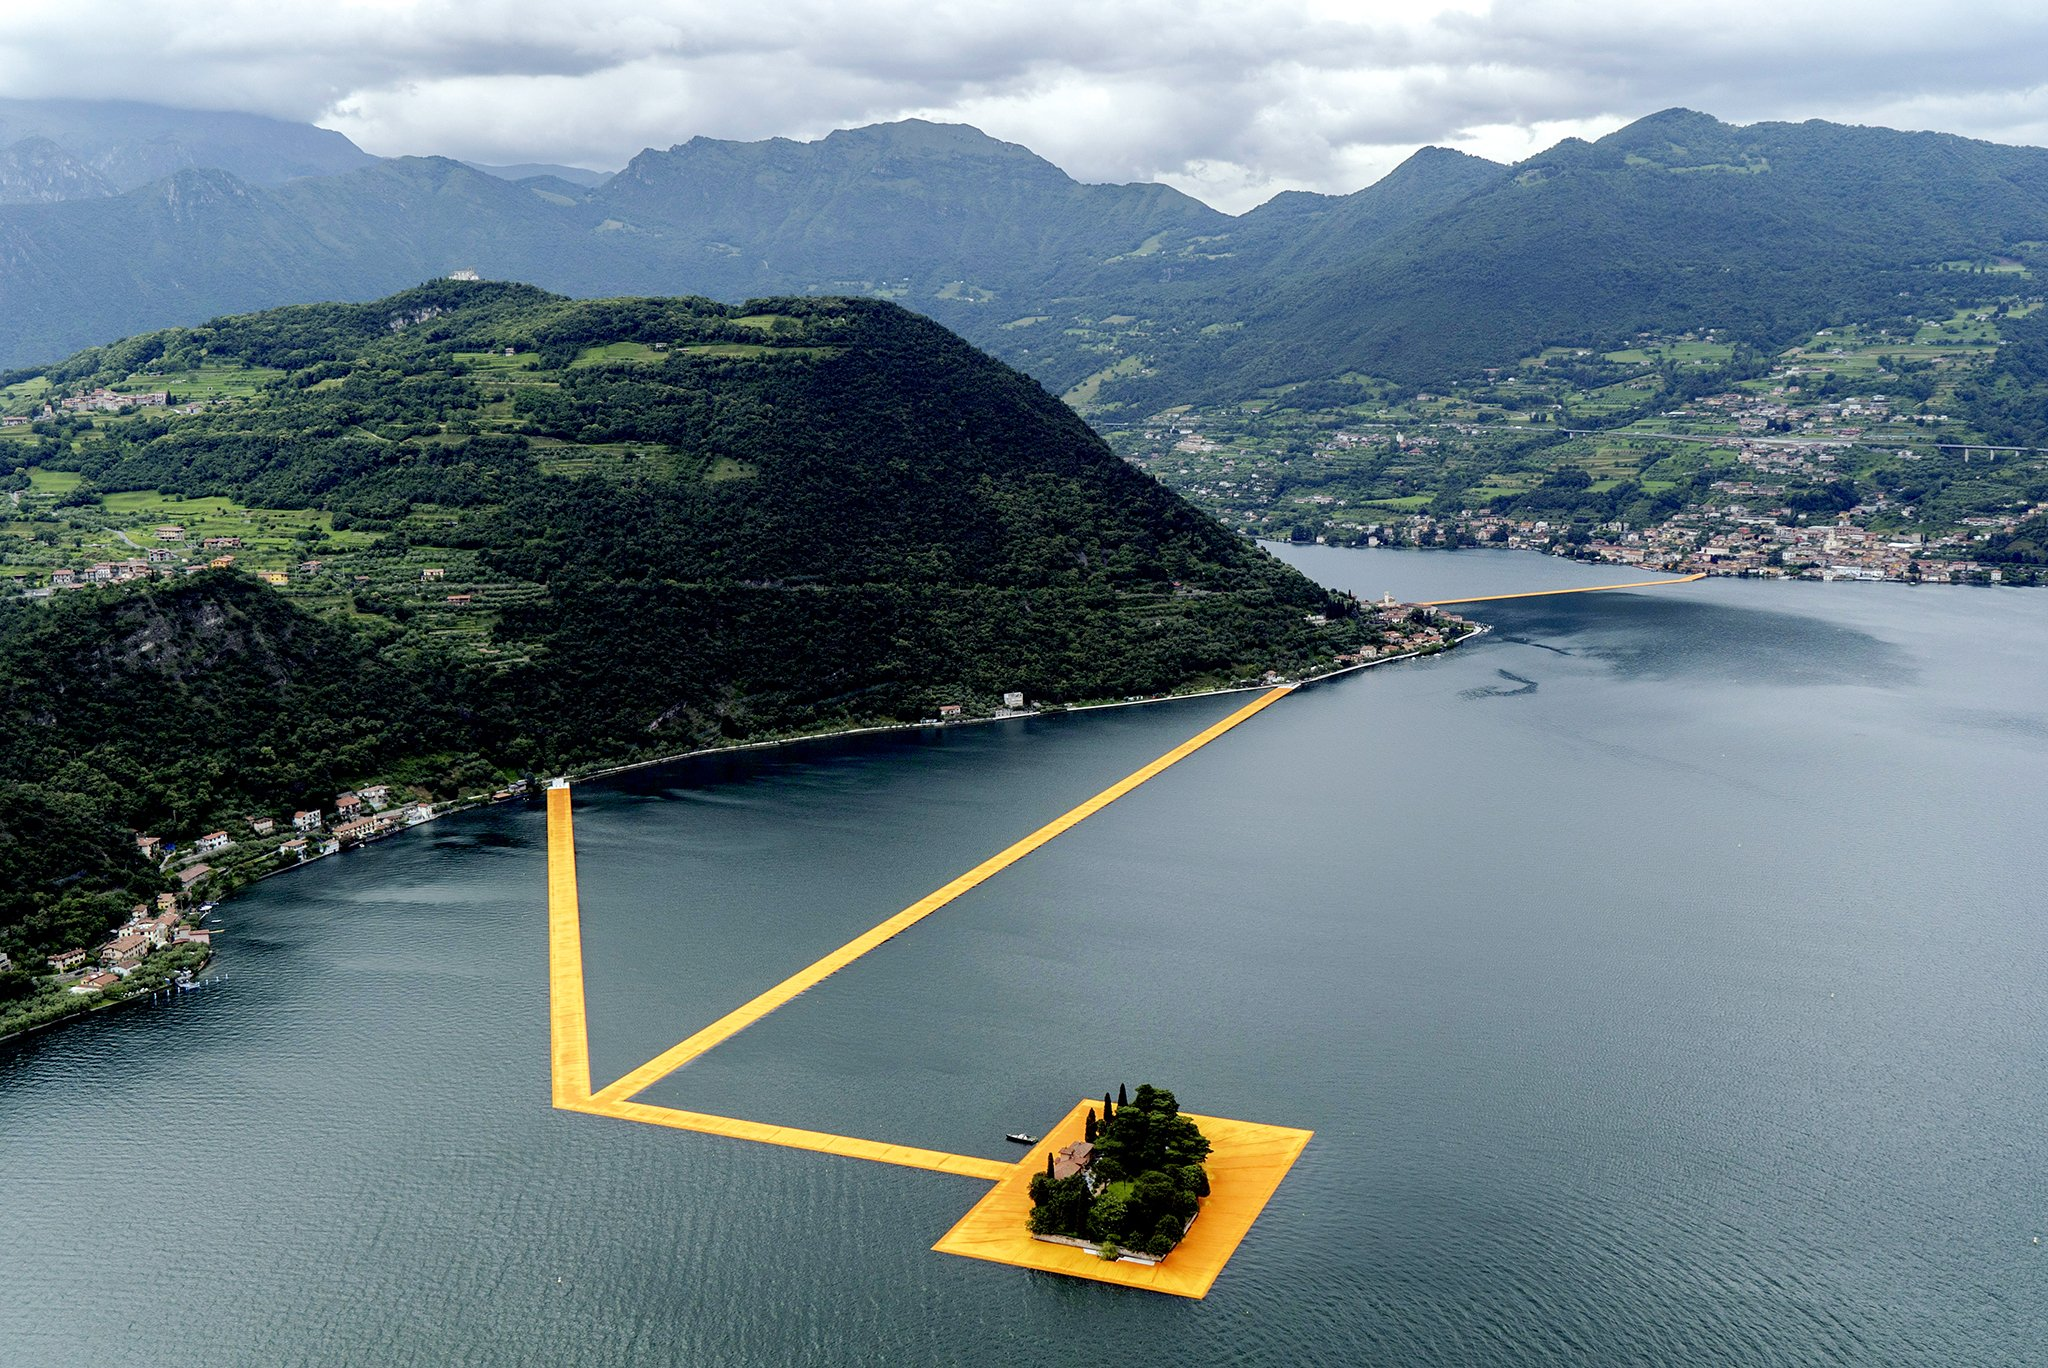 "Stretching For Nearly Two Miles, ""The Floating Piers"" Project By Artist Christo, That Connects Two Small Islands In Lake Iseo In Pilzone, Italy, June 16, 2016. ""The Floating Piers"" Is His First Outdoor Installation Since 2005, When He And Jeanne-Claude, His Collaborator And Wife, Who Passed Away In 2009, Installed 7,500 Golden-paneled Gates In Central Park In New York City. (Alessandro Grassani/The New York Times)"